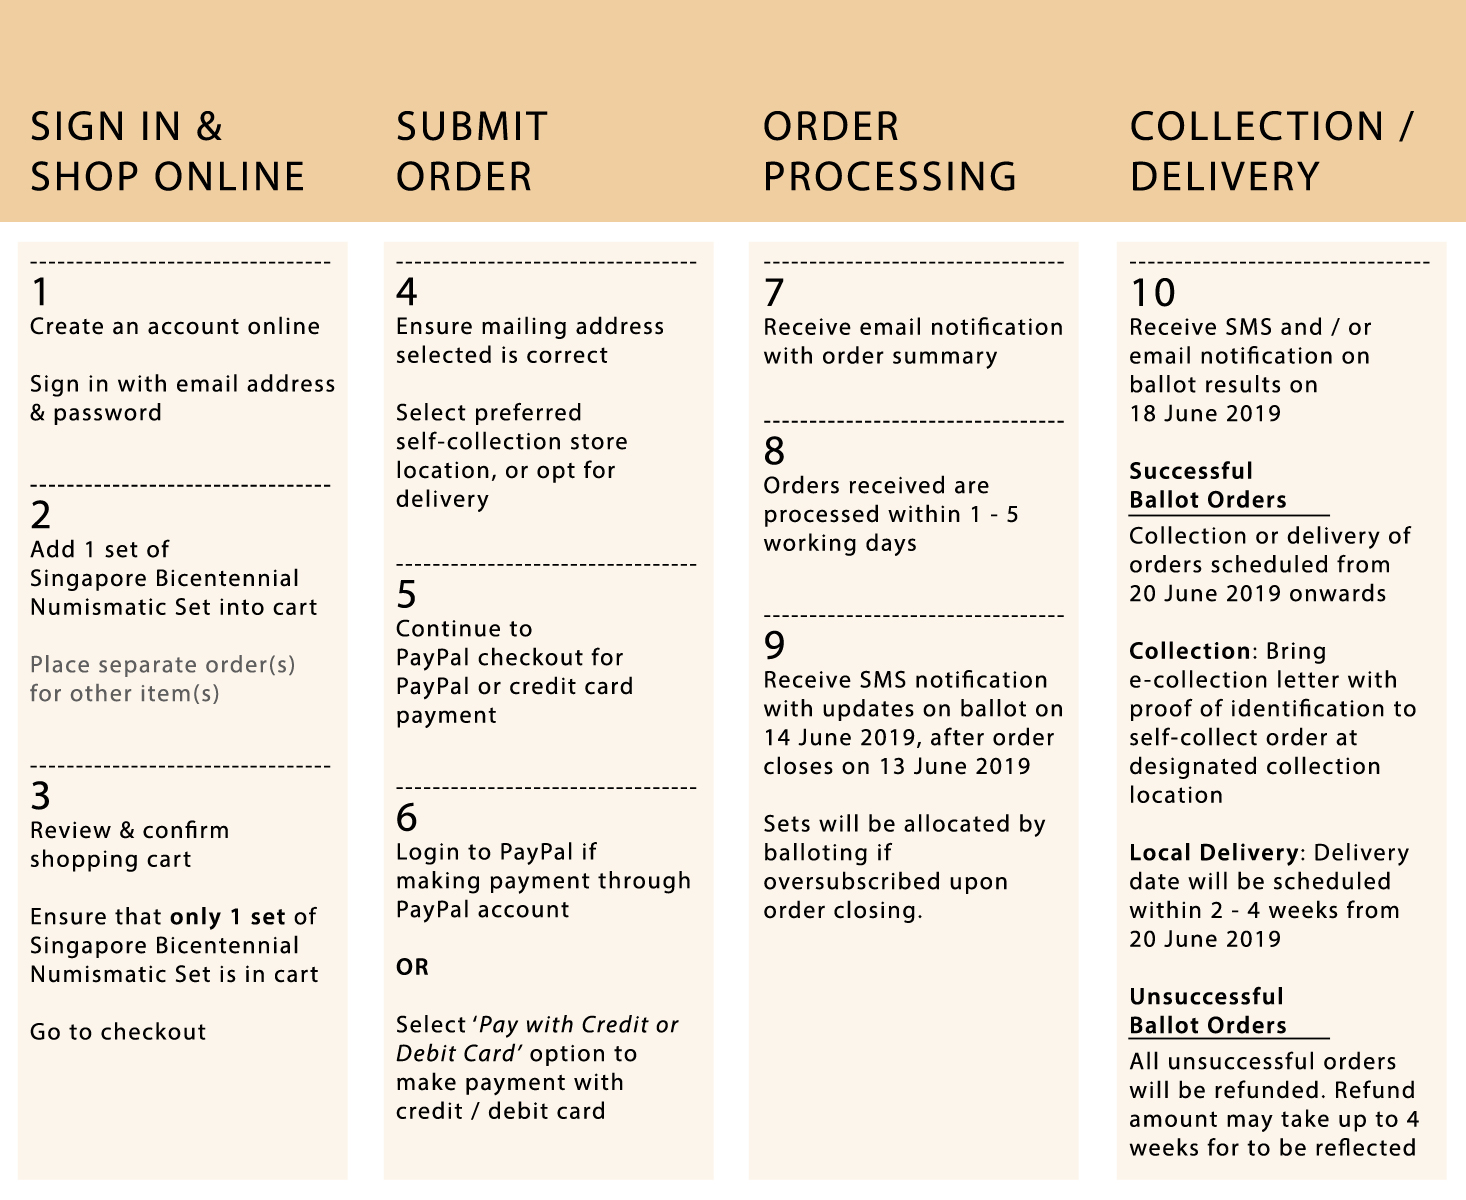 How to Order - Singapore Bicentennial Numismatic Currency Set